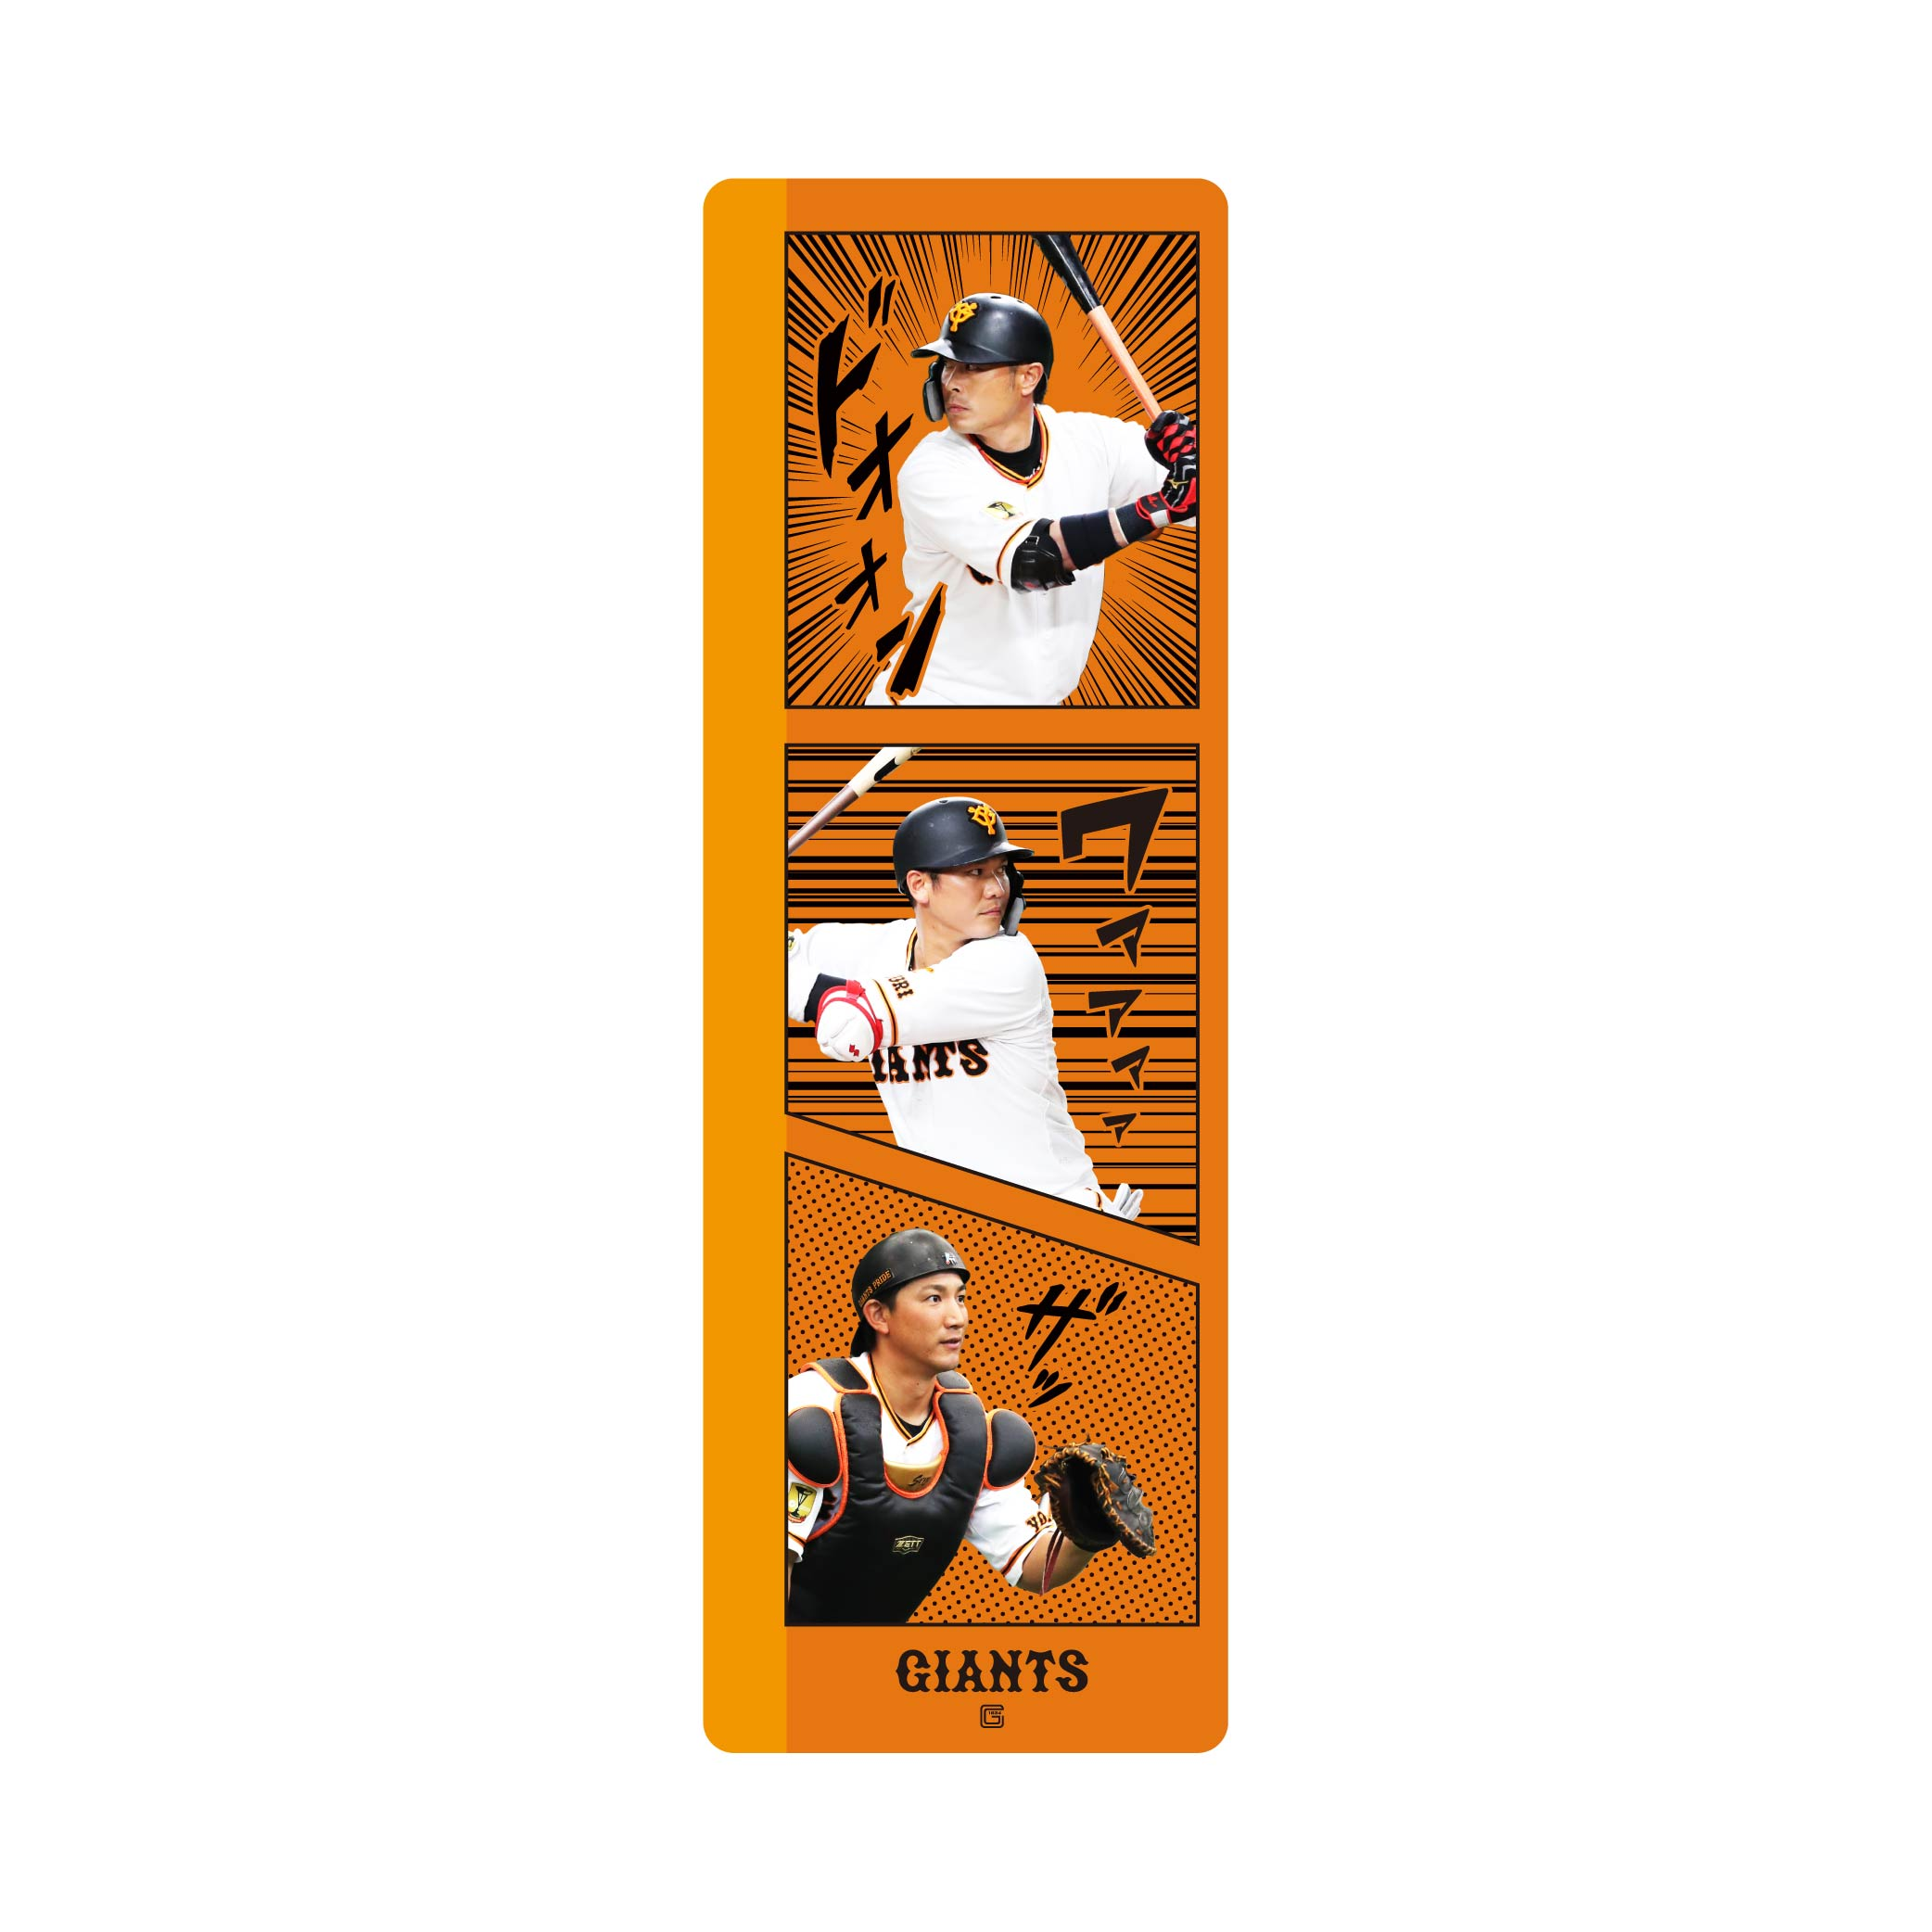 GIANTS memoboard 01